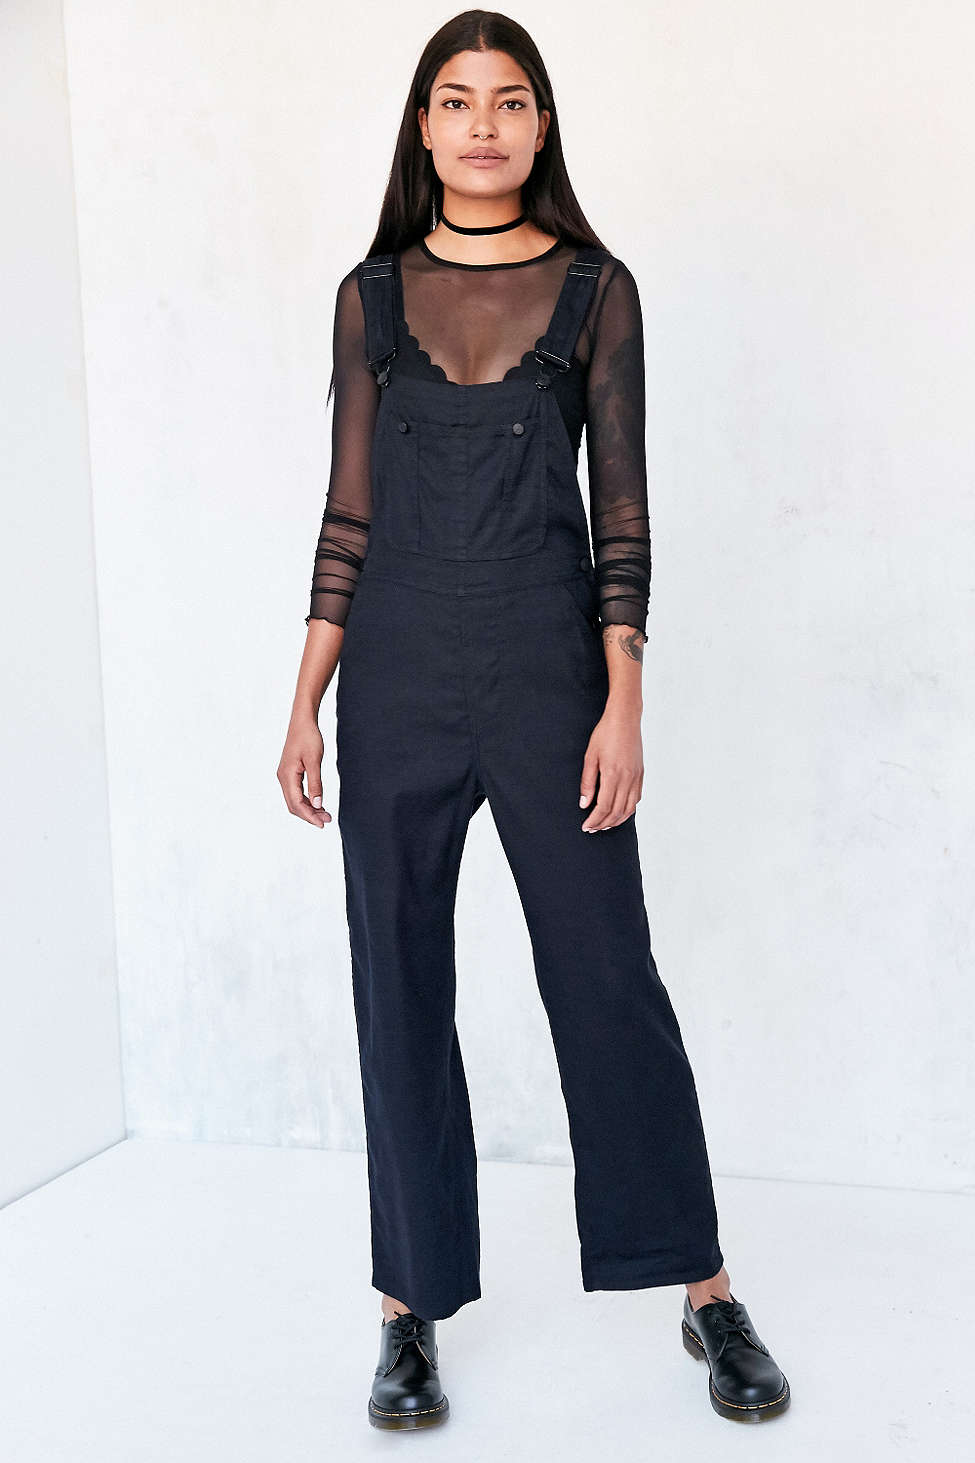 black-jumpsuit-black-top-sheer-spring-summer-wear-fashion-style-overalls-black-shoe-brogues-choker-brun-lunch.jpg